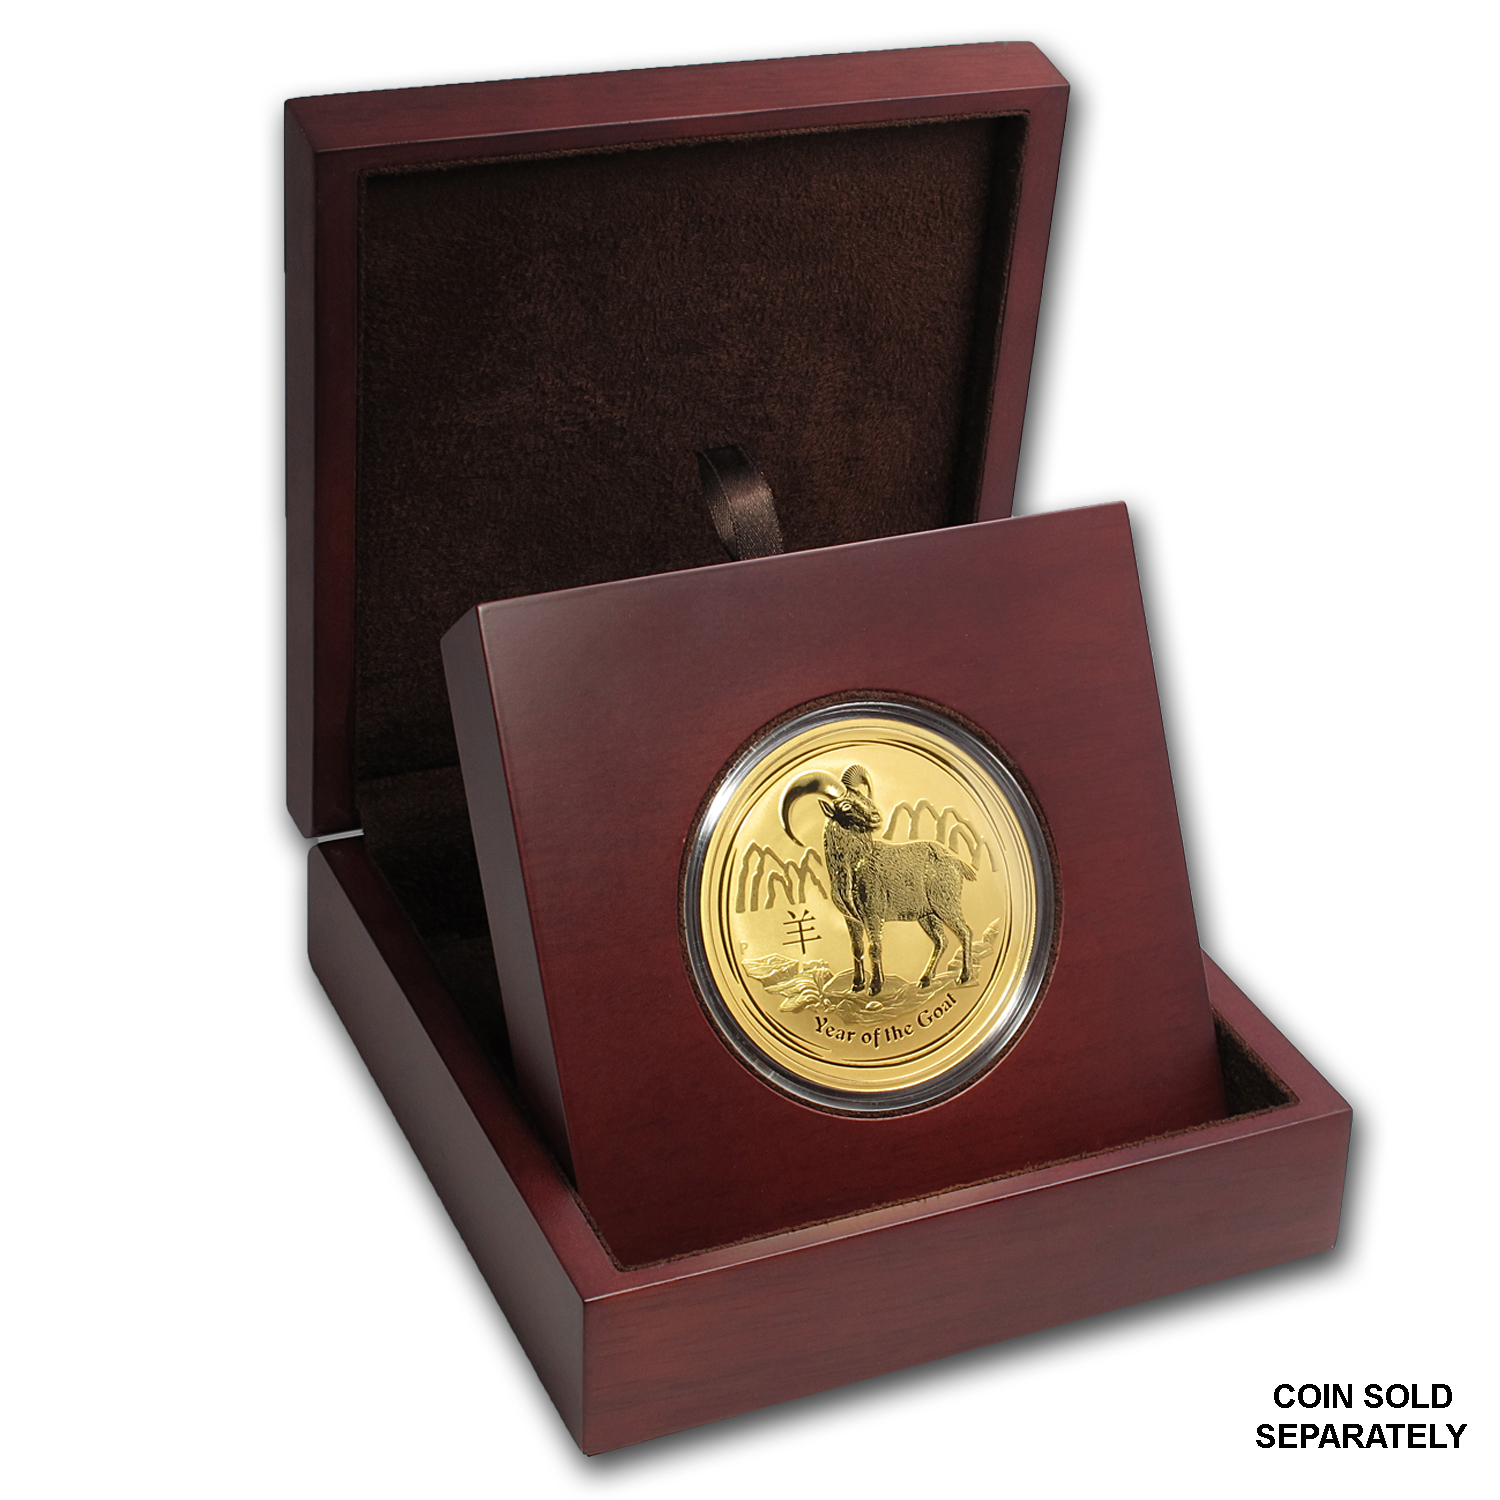 APMEX Wood Gift Box - 10 oz Perth Mint Gold Coin Series 2